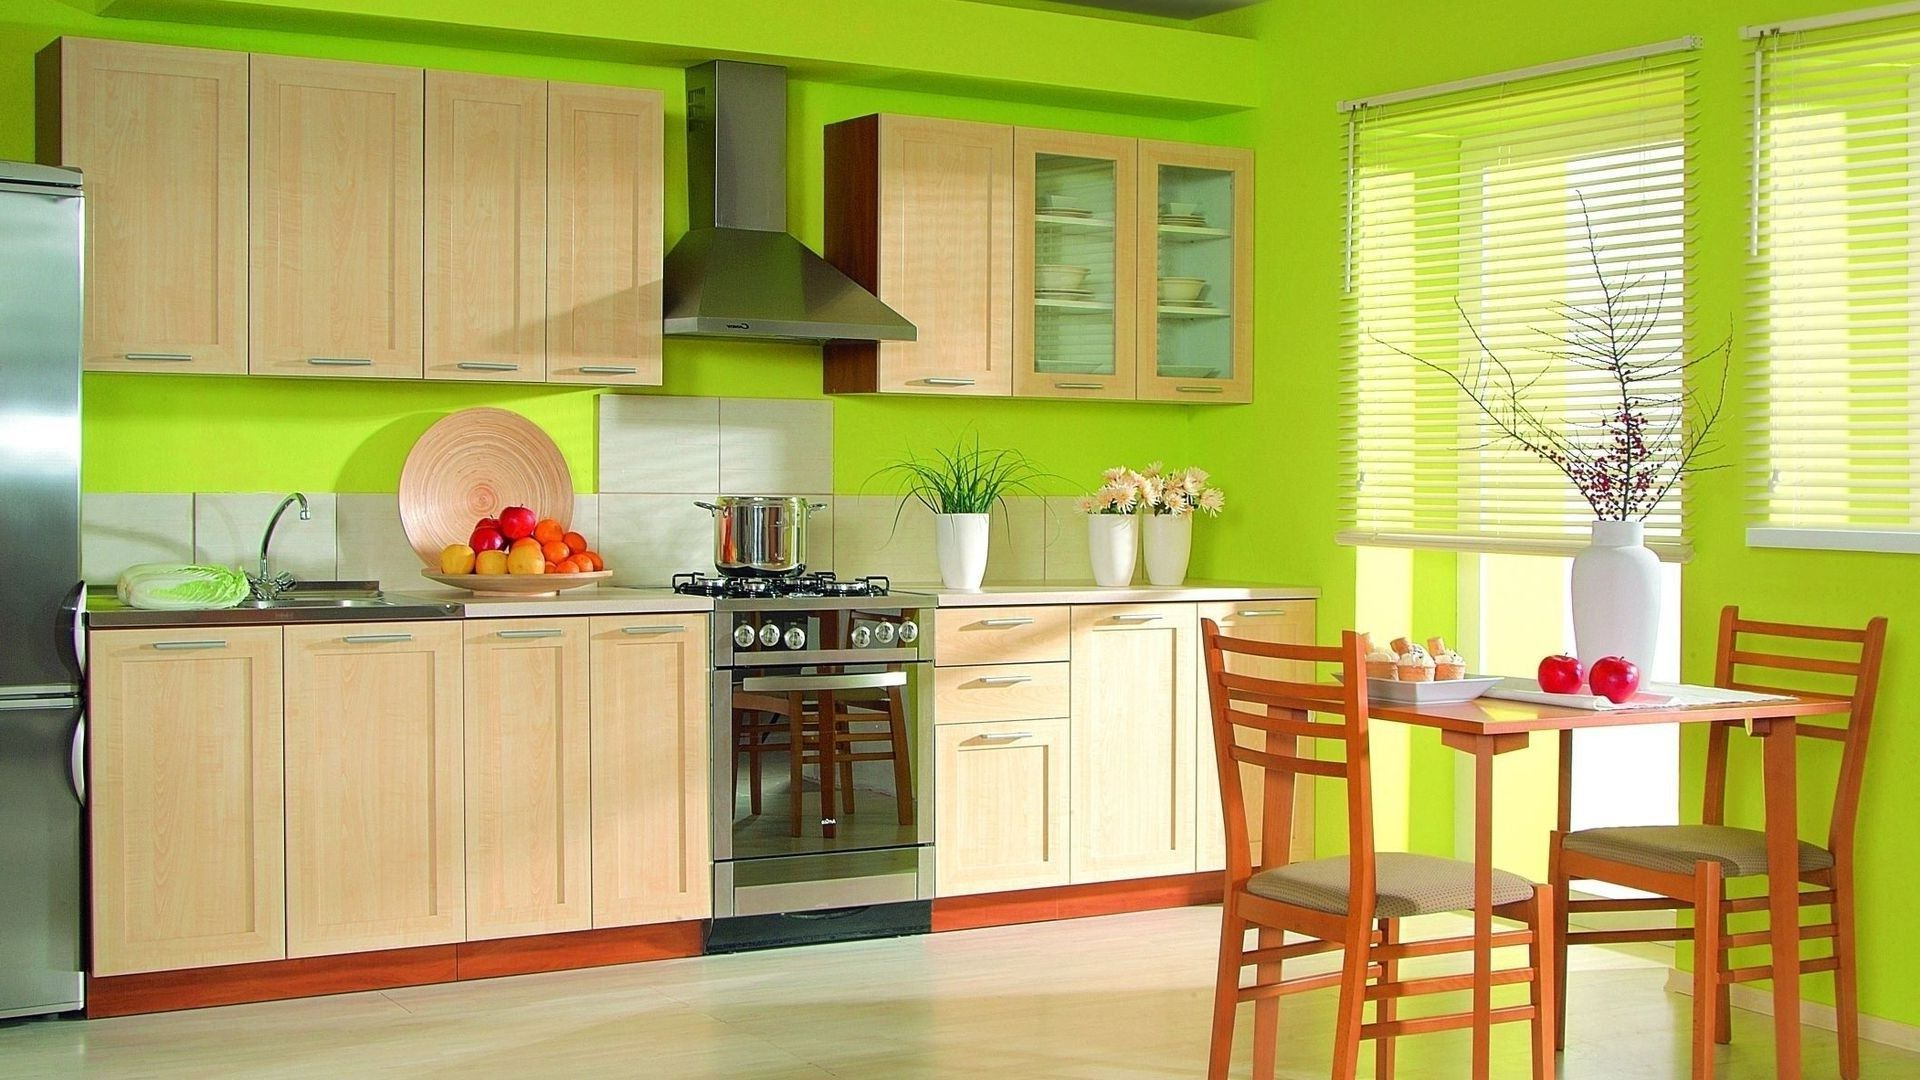 Uncategorized Green Kitchen Design feng kuhinja shui pinterest green kitchen designs modern in color inspirations awesome lime design ideas with white wooden cabinets an